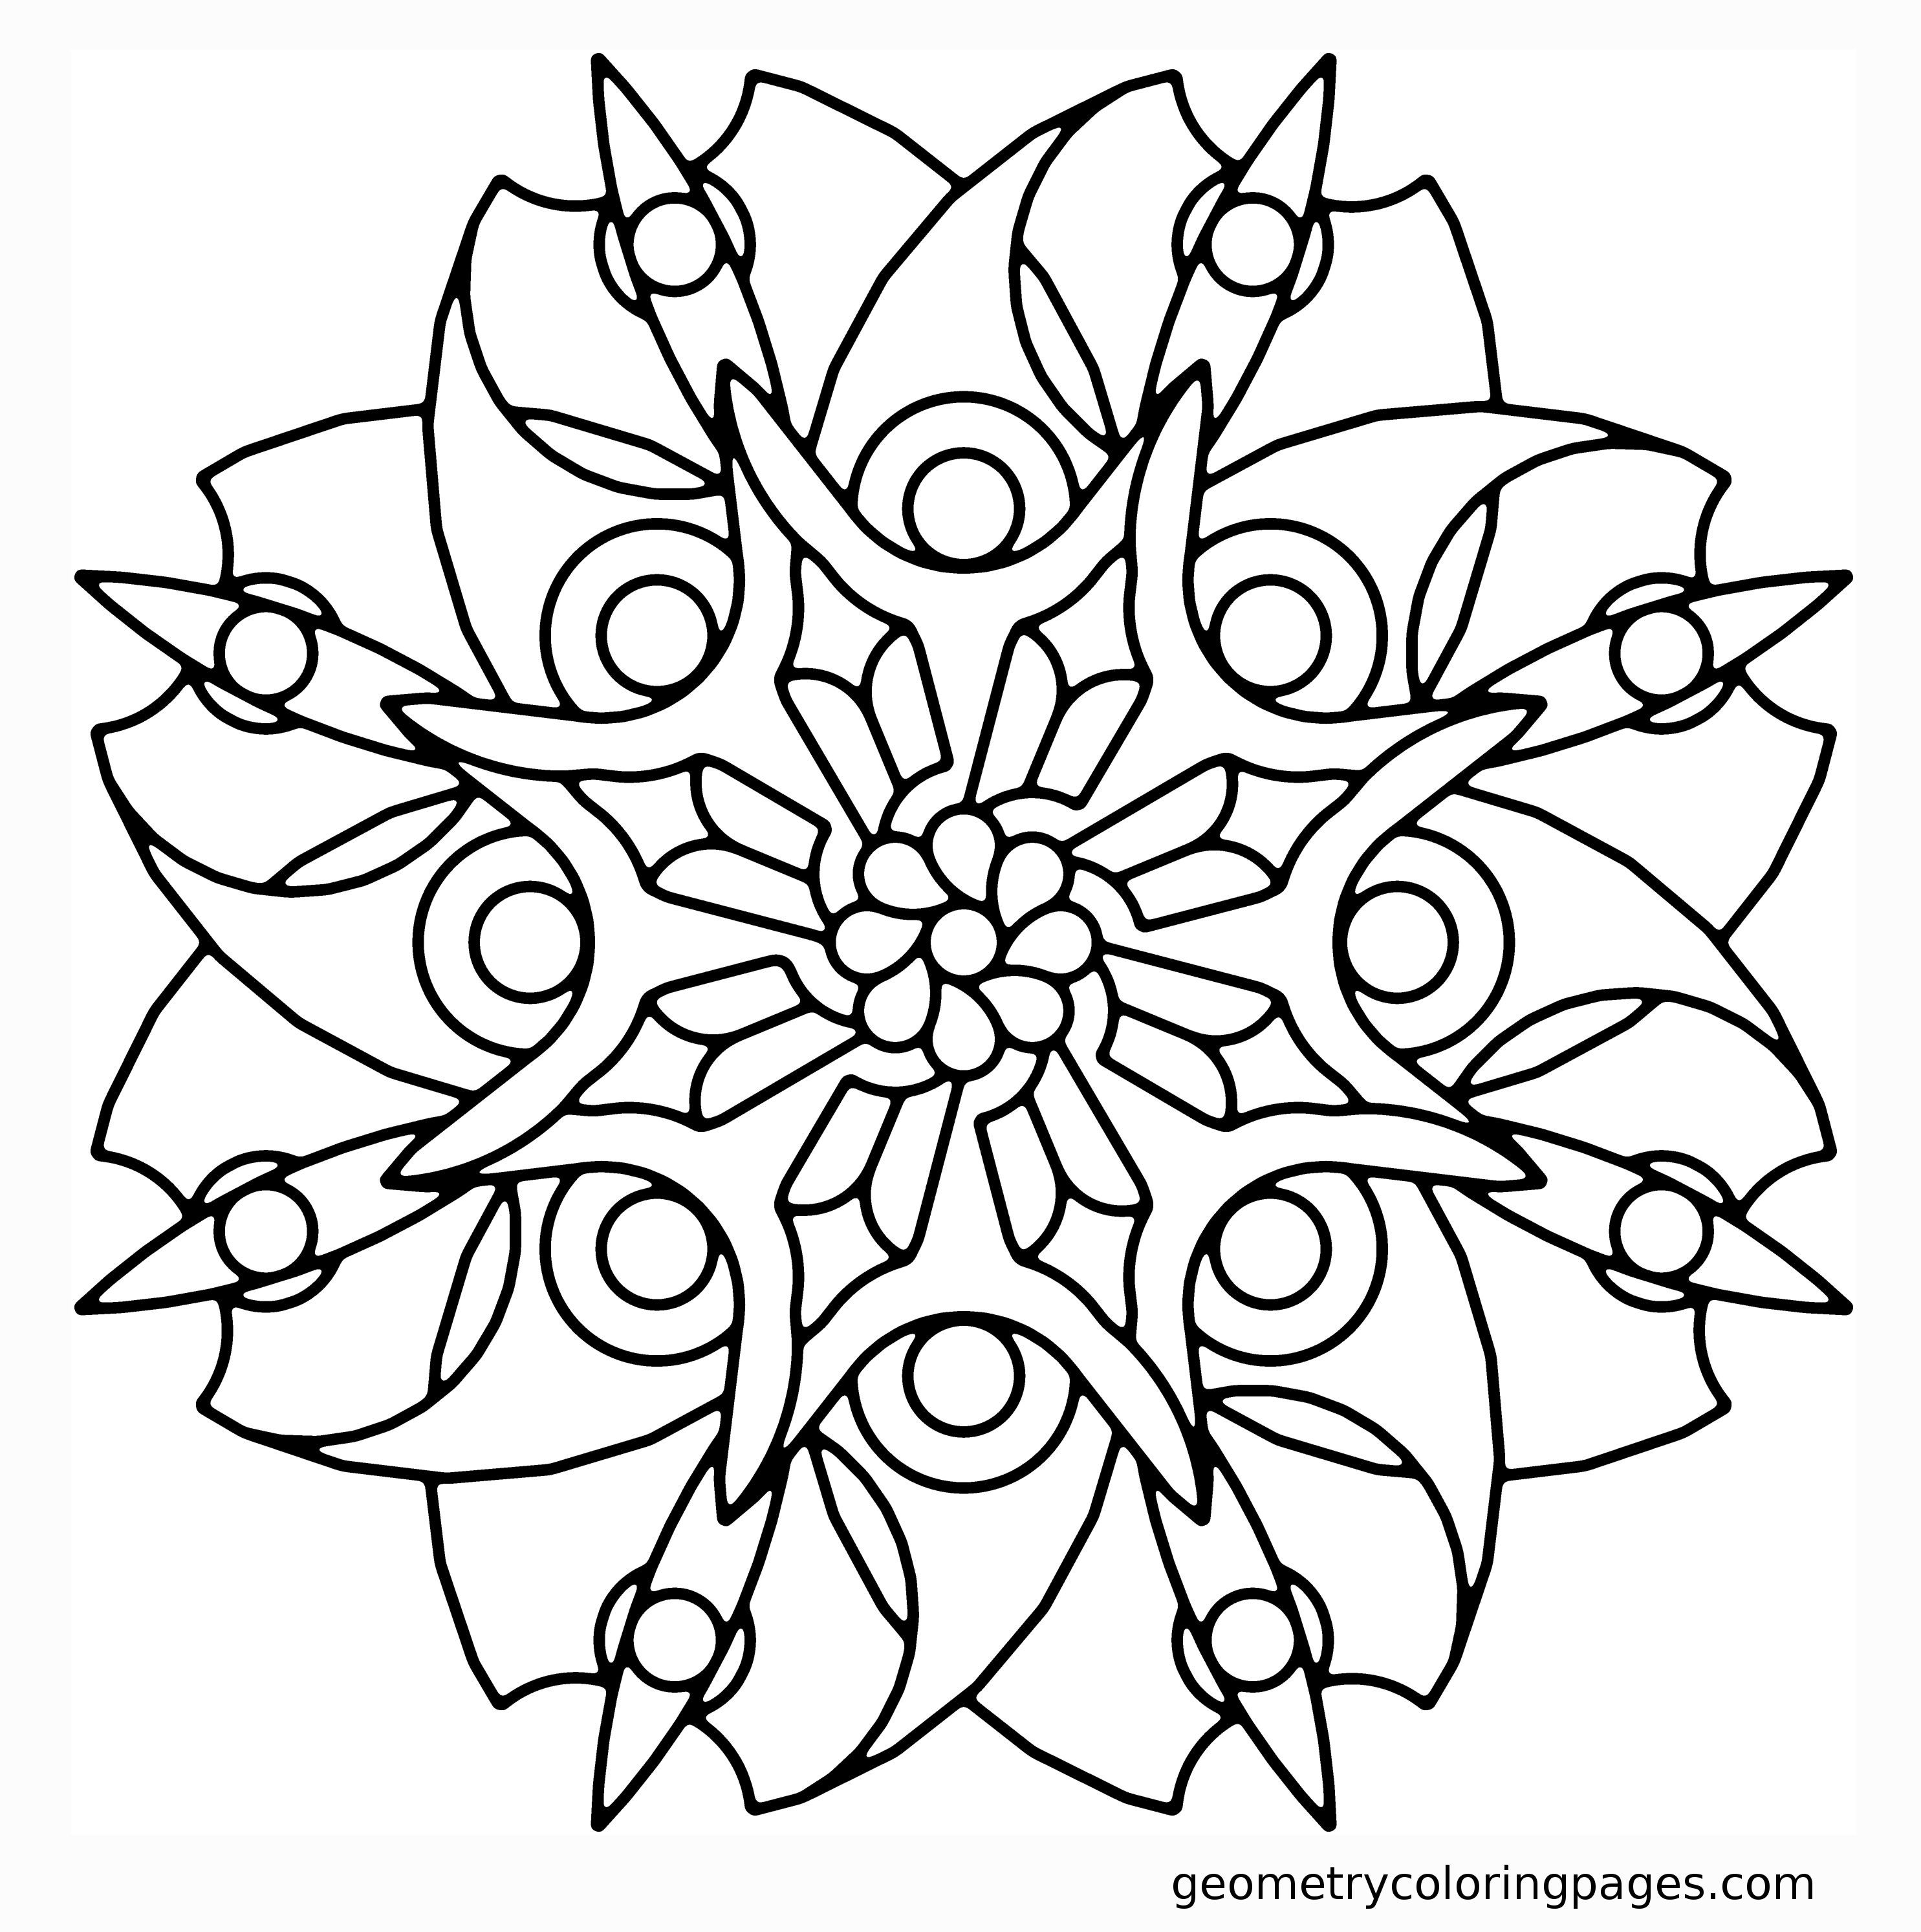 Geometry Coloring Page, Blade Flower Adult Coloring